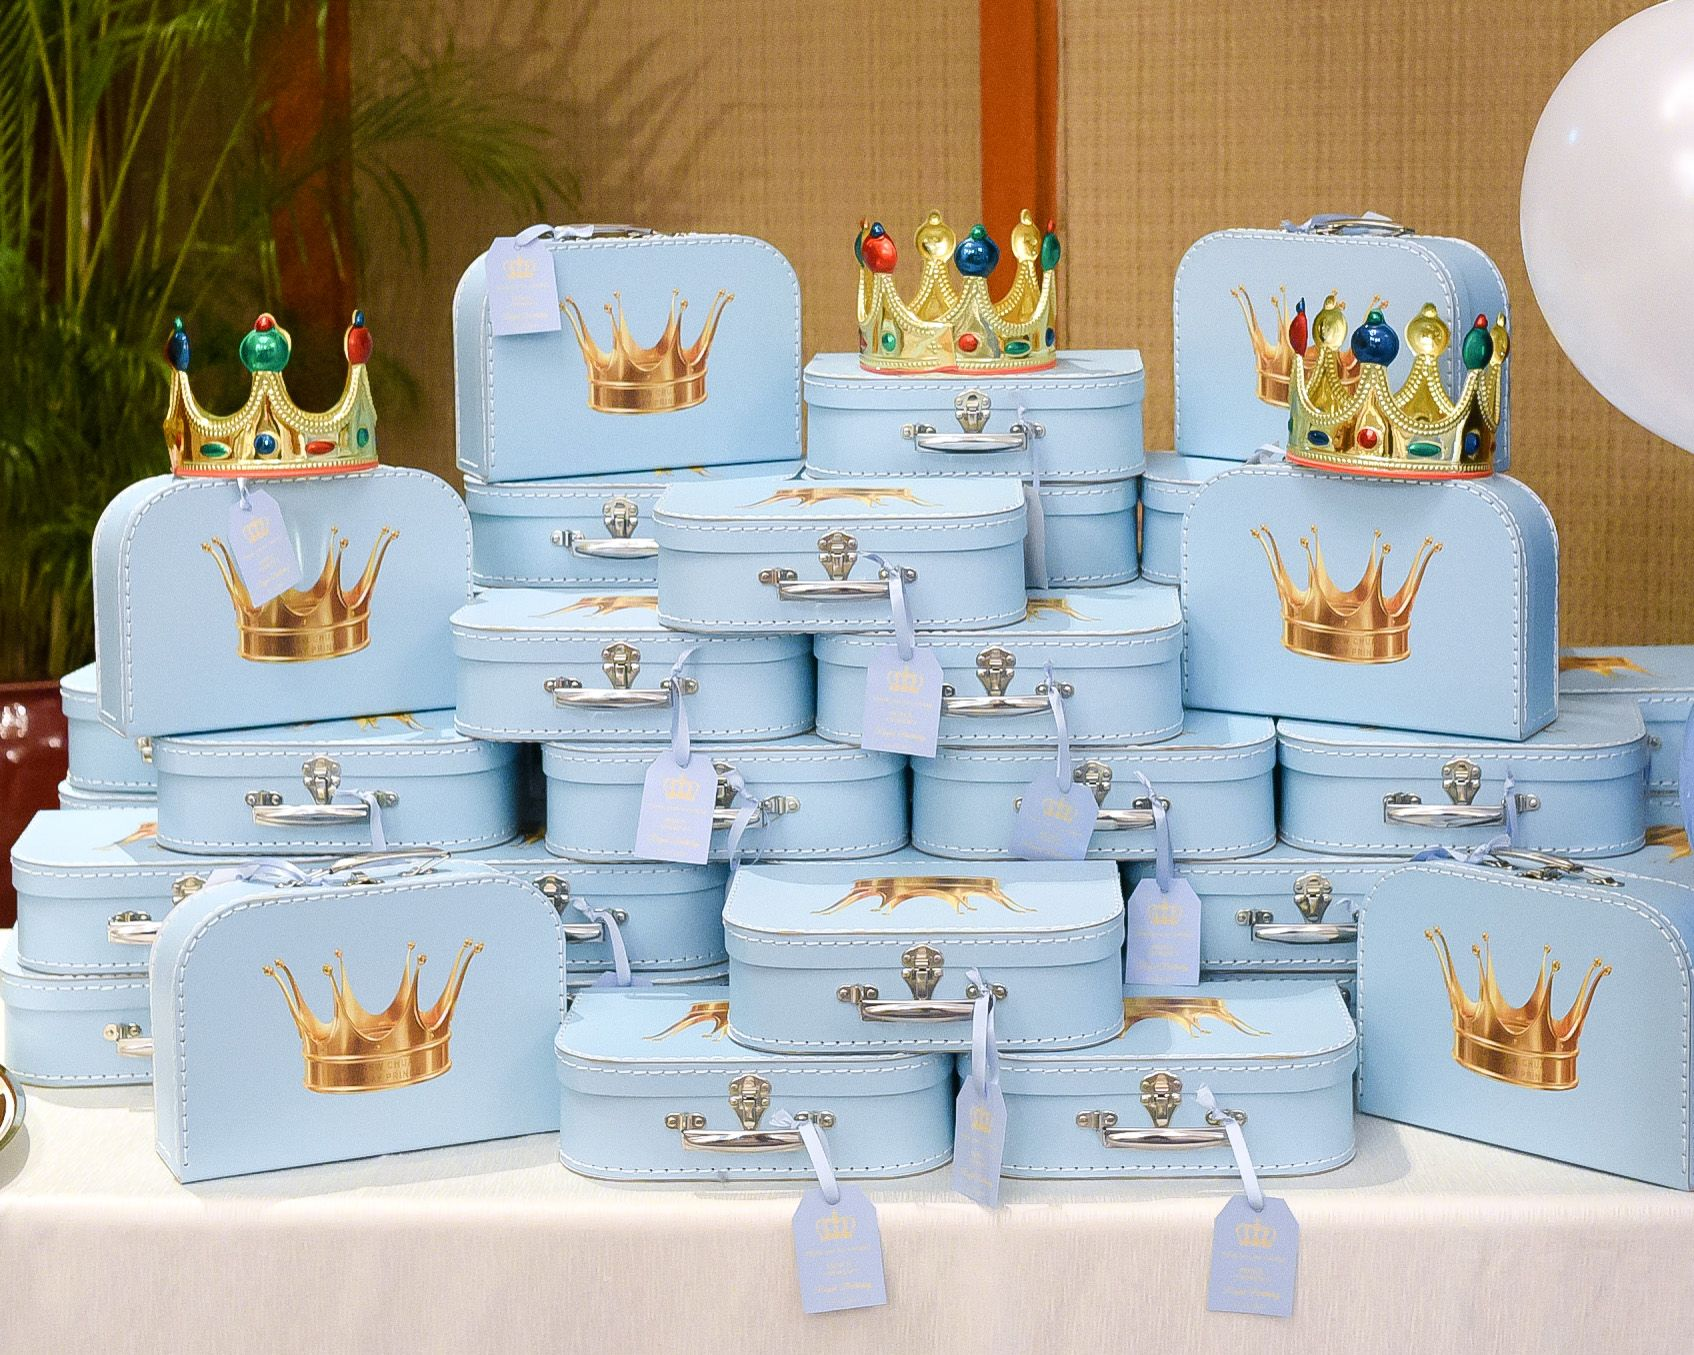 Little blue luggage were given out as door gifts